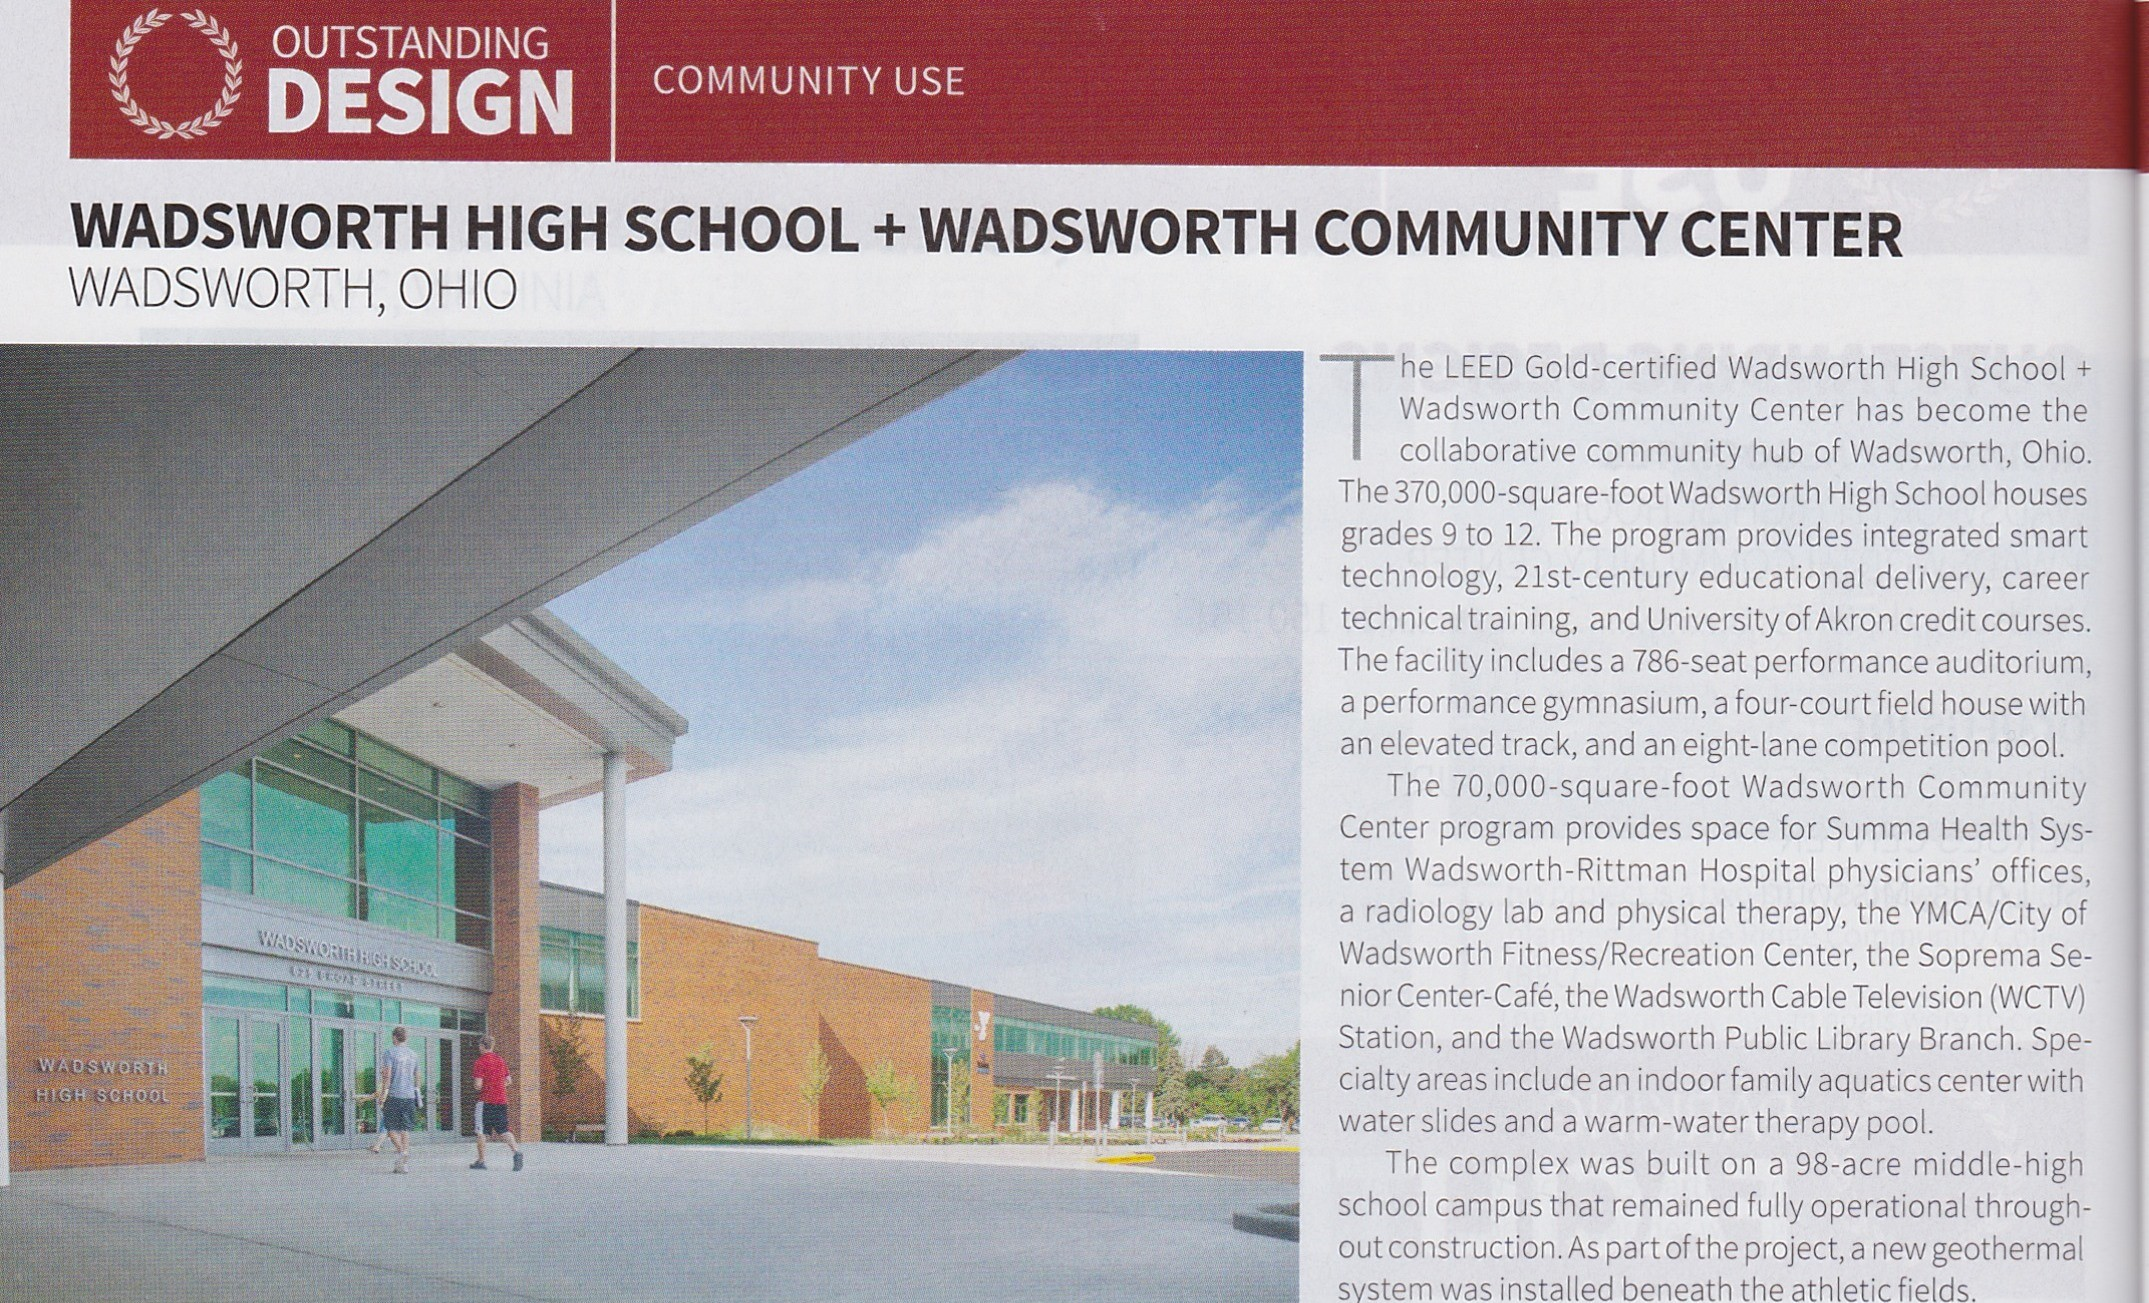 WHS Outstanding Design Award